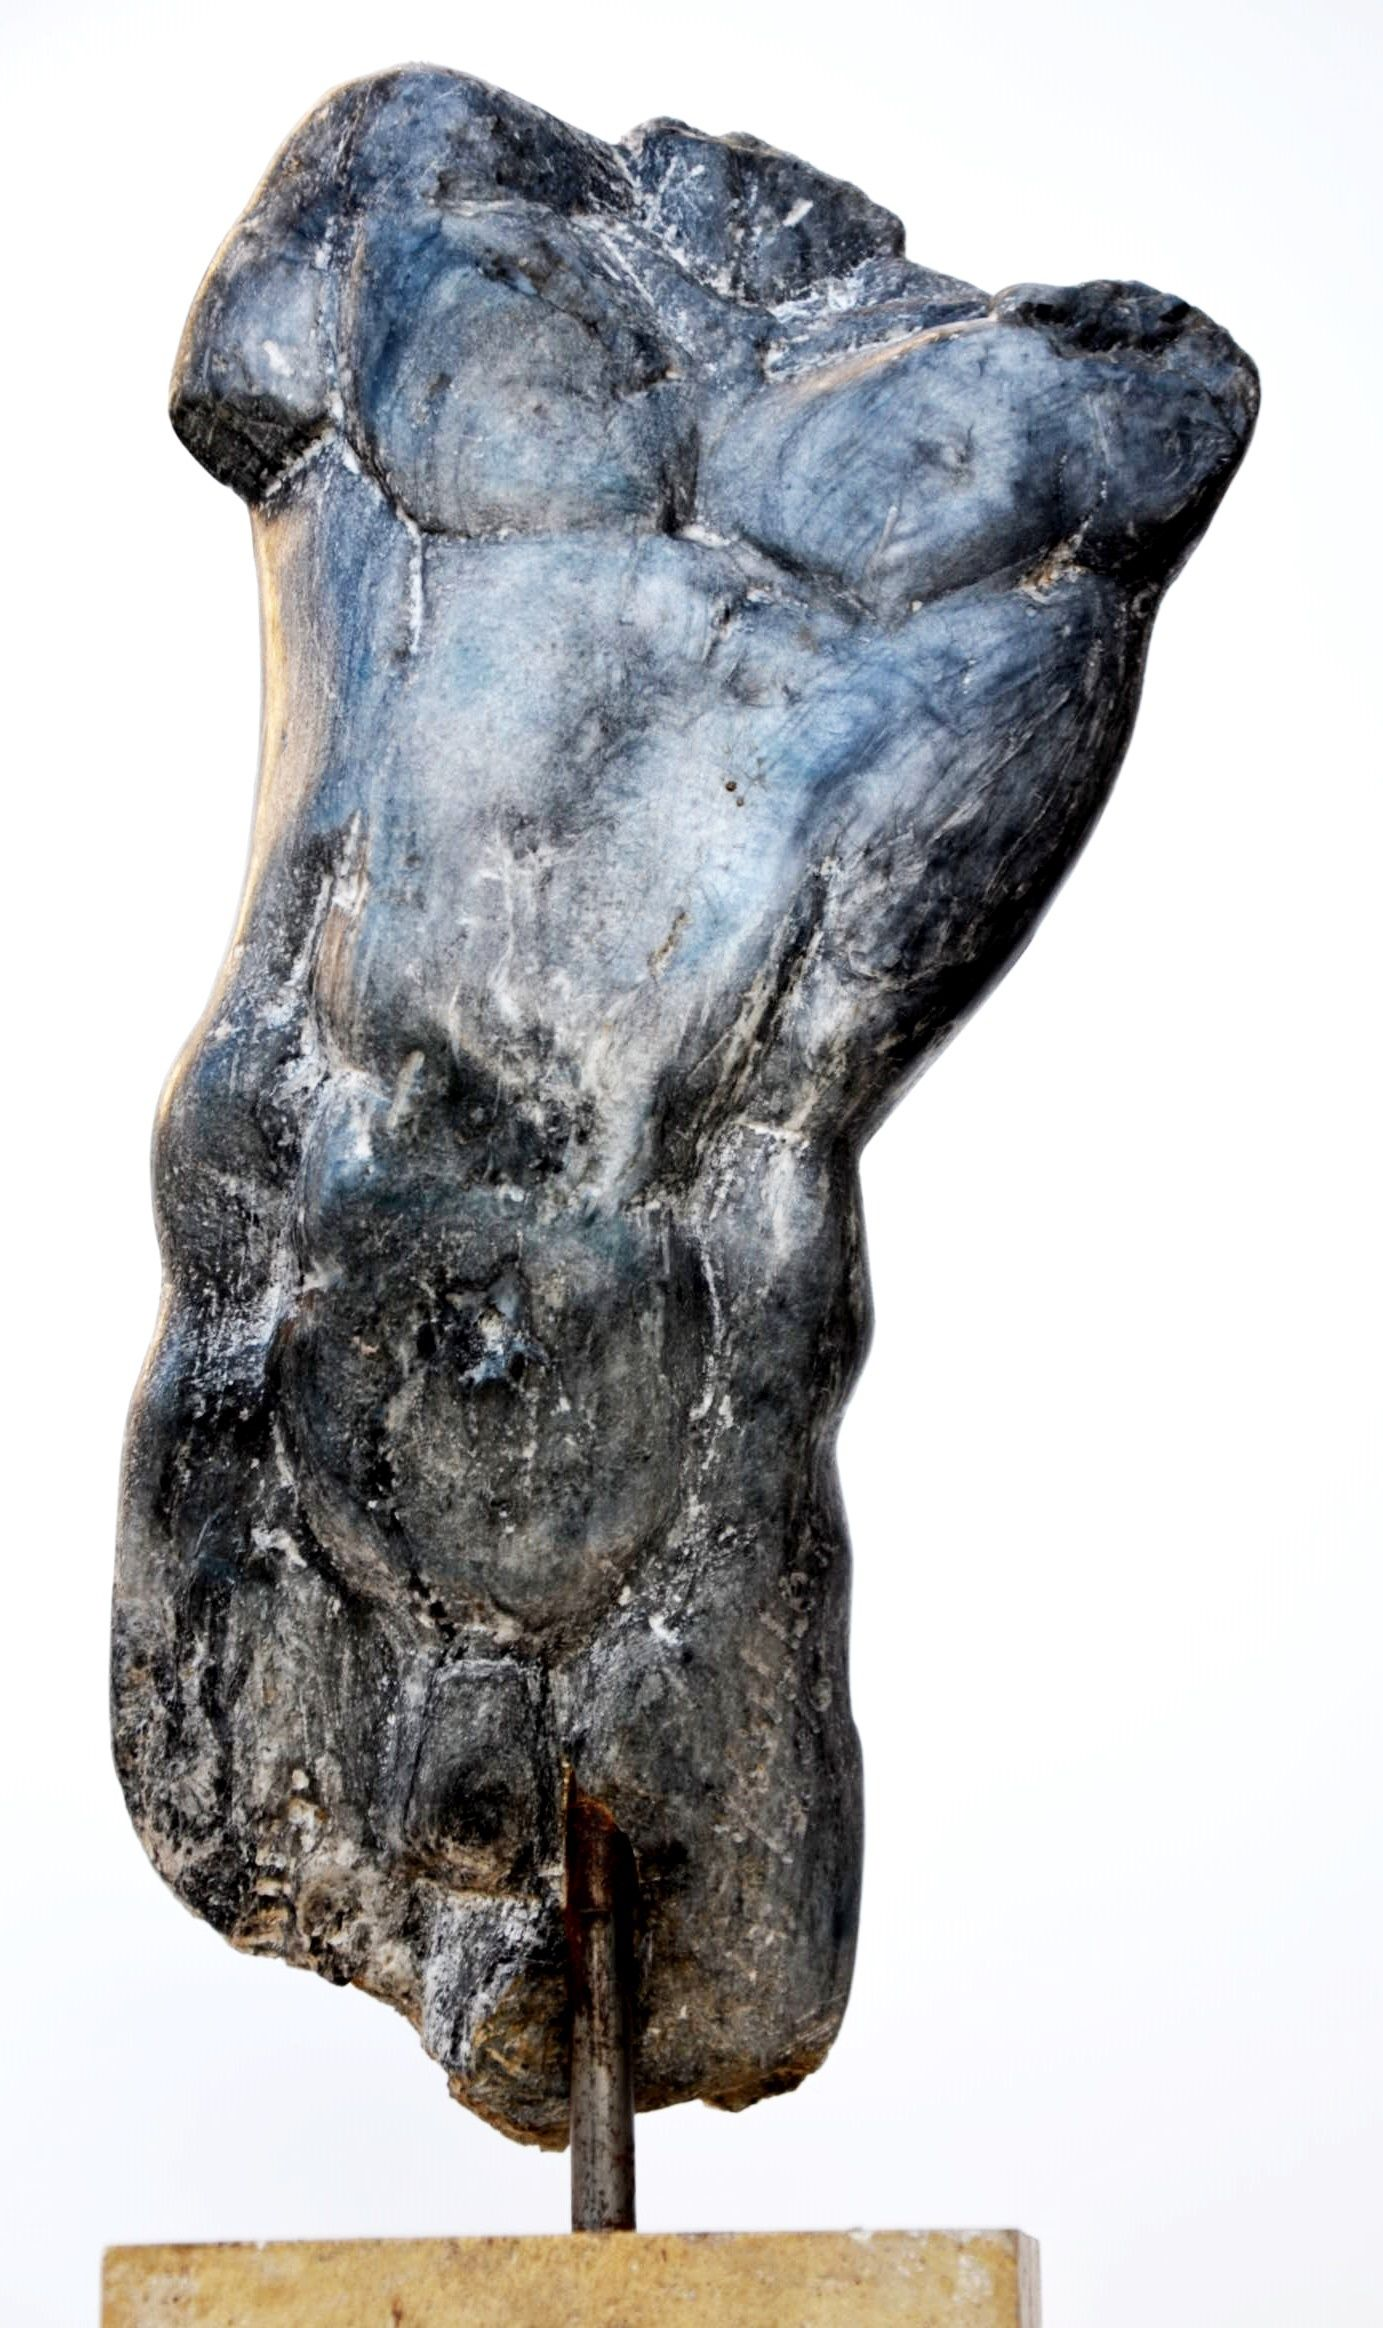 Torse d'homme I,Yann Guillon,Sculpture